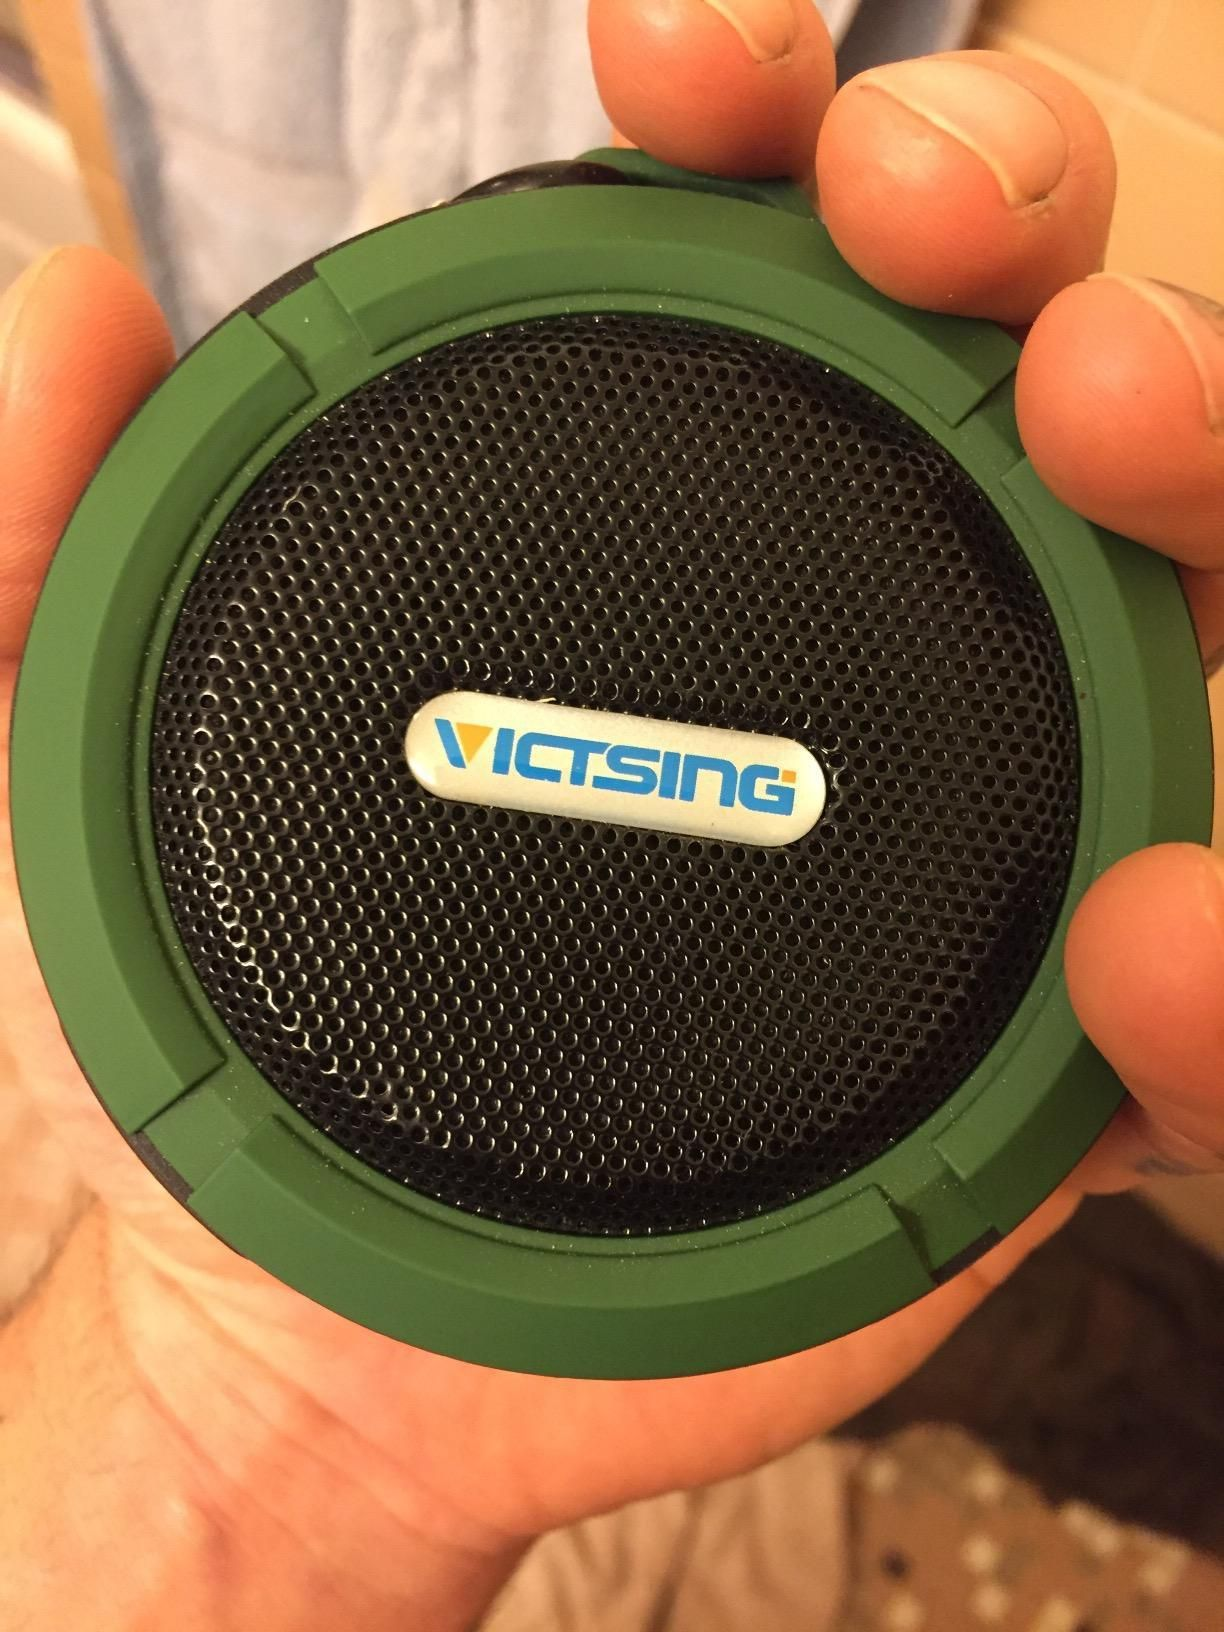 Built In Mic Bluetooth Speaker And Hands Free Function So You Can Pick Up A Phone Call Via This Mini Speaker Shower Bluetooth Speaker Shower Speaker Bluetooth